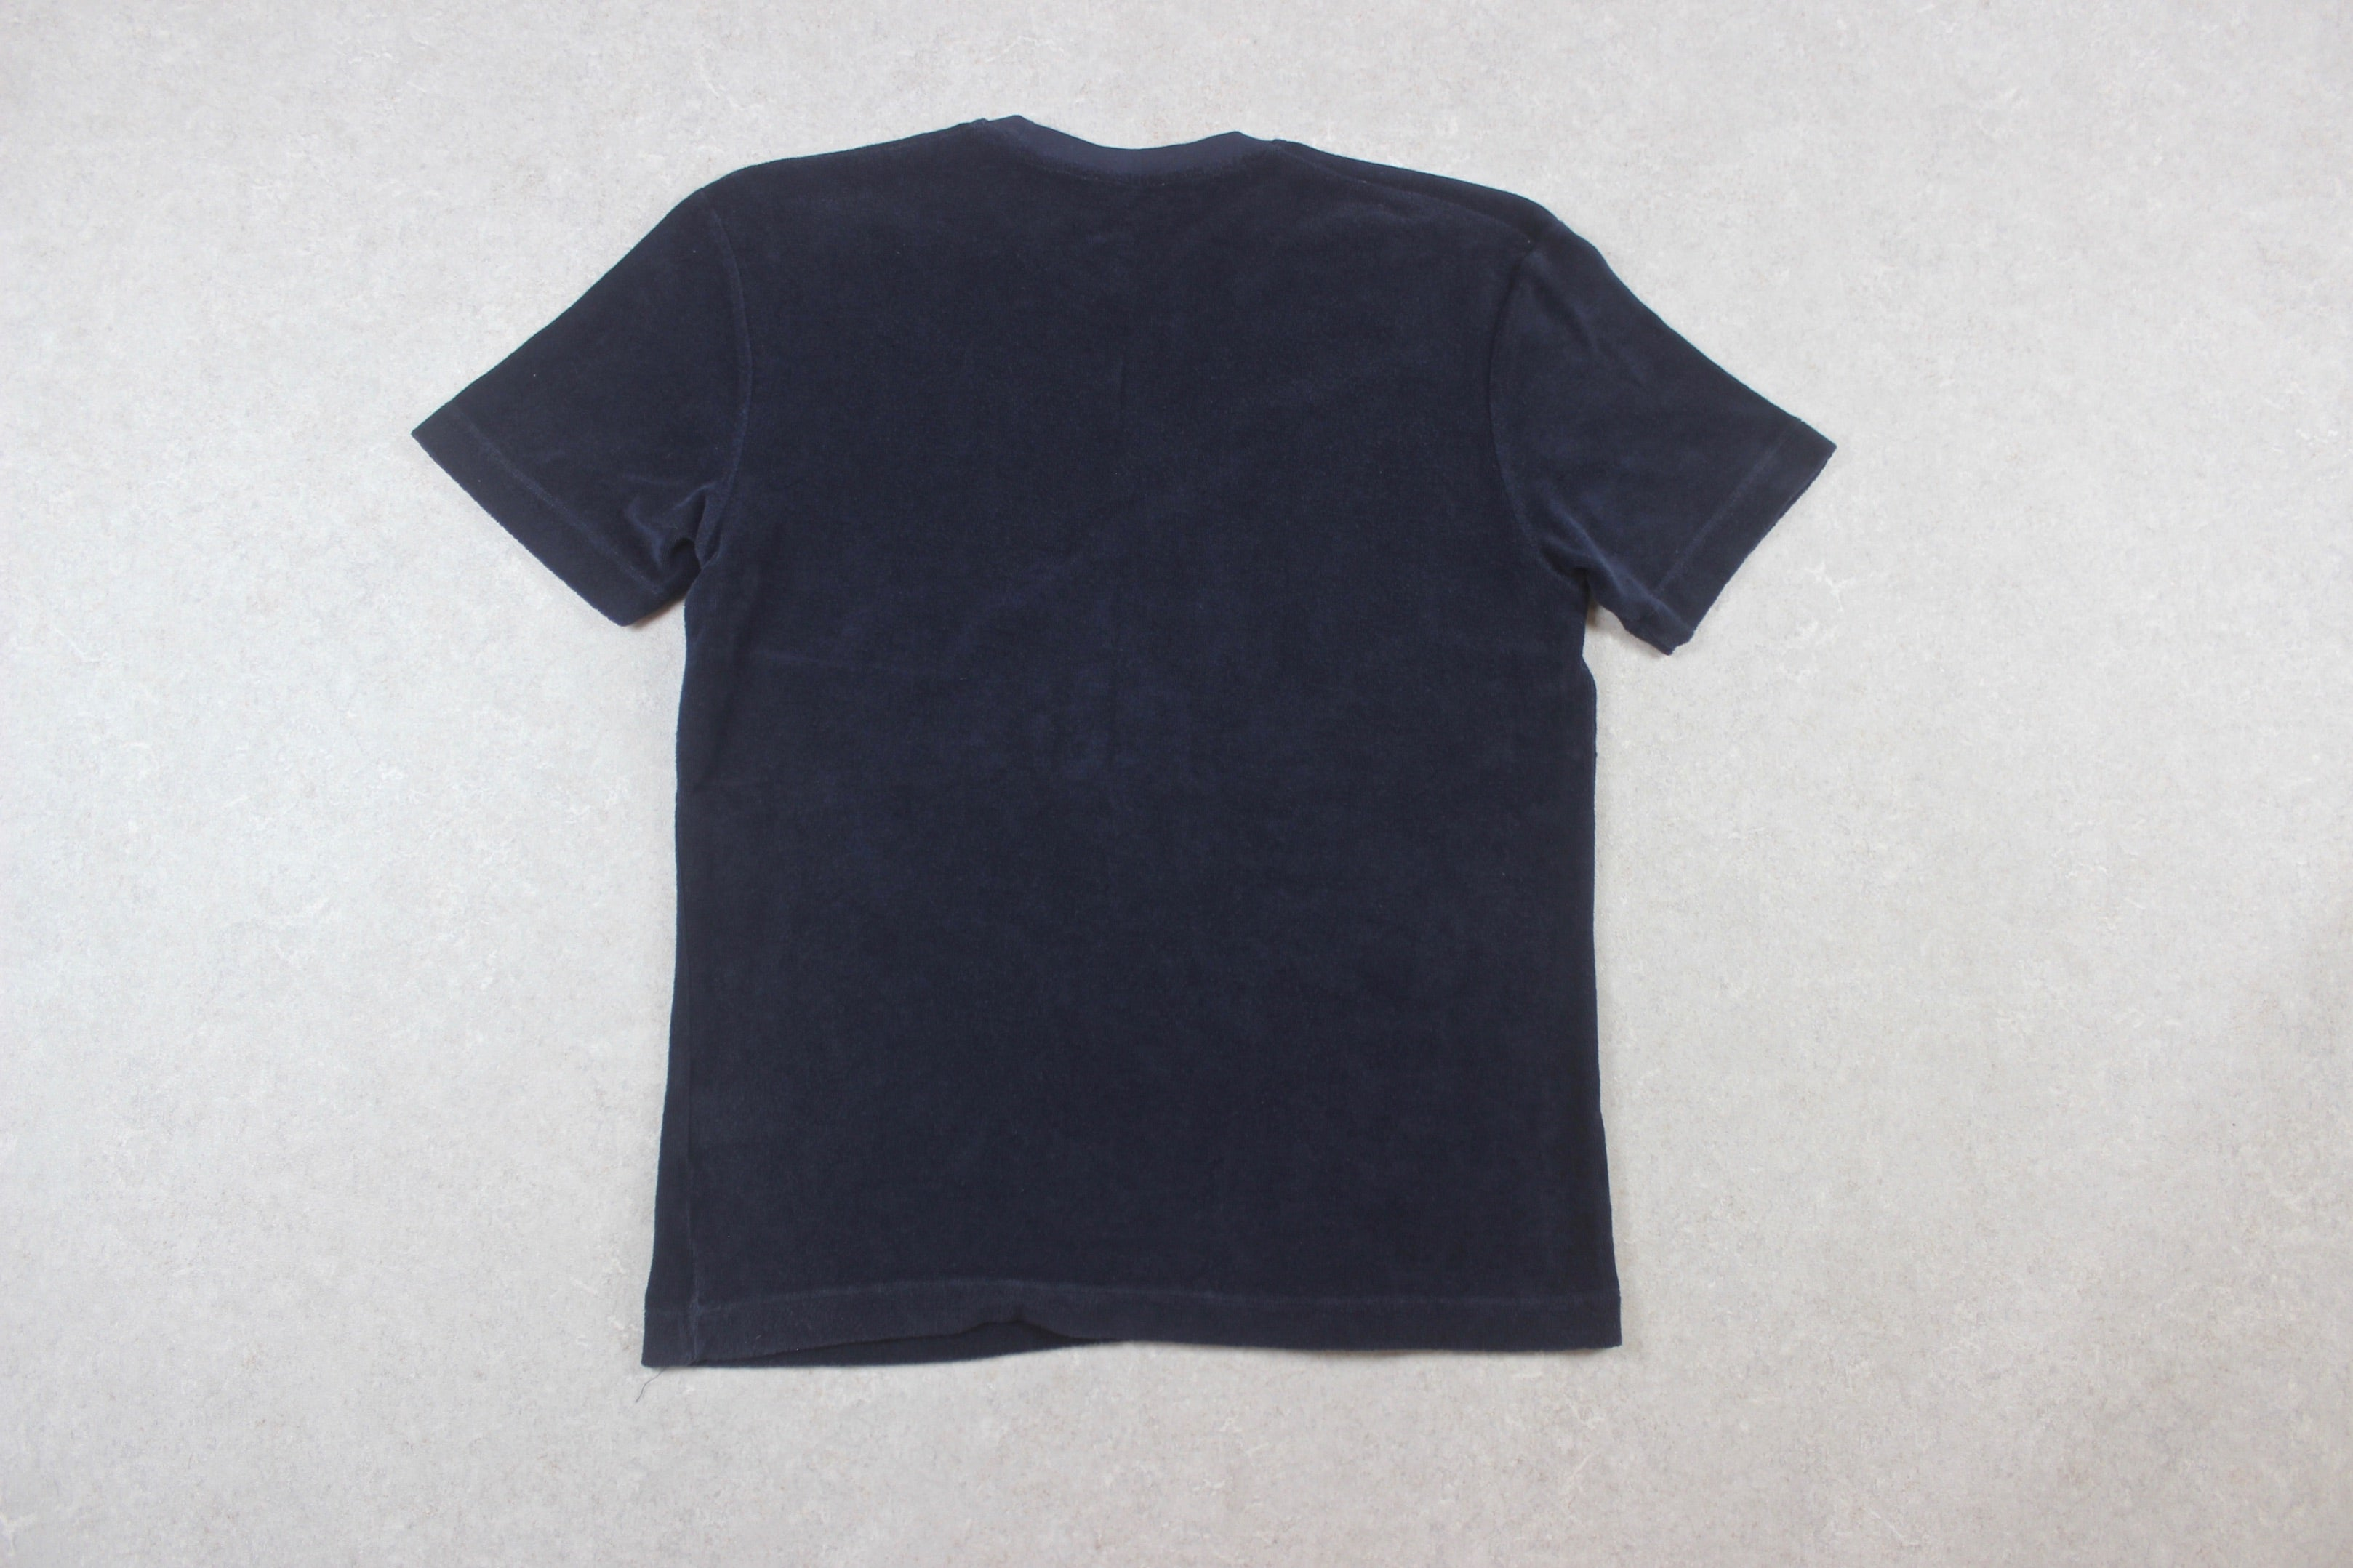 Sunspel - Towelling T Shirt - Navy Blue - Large